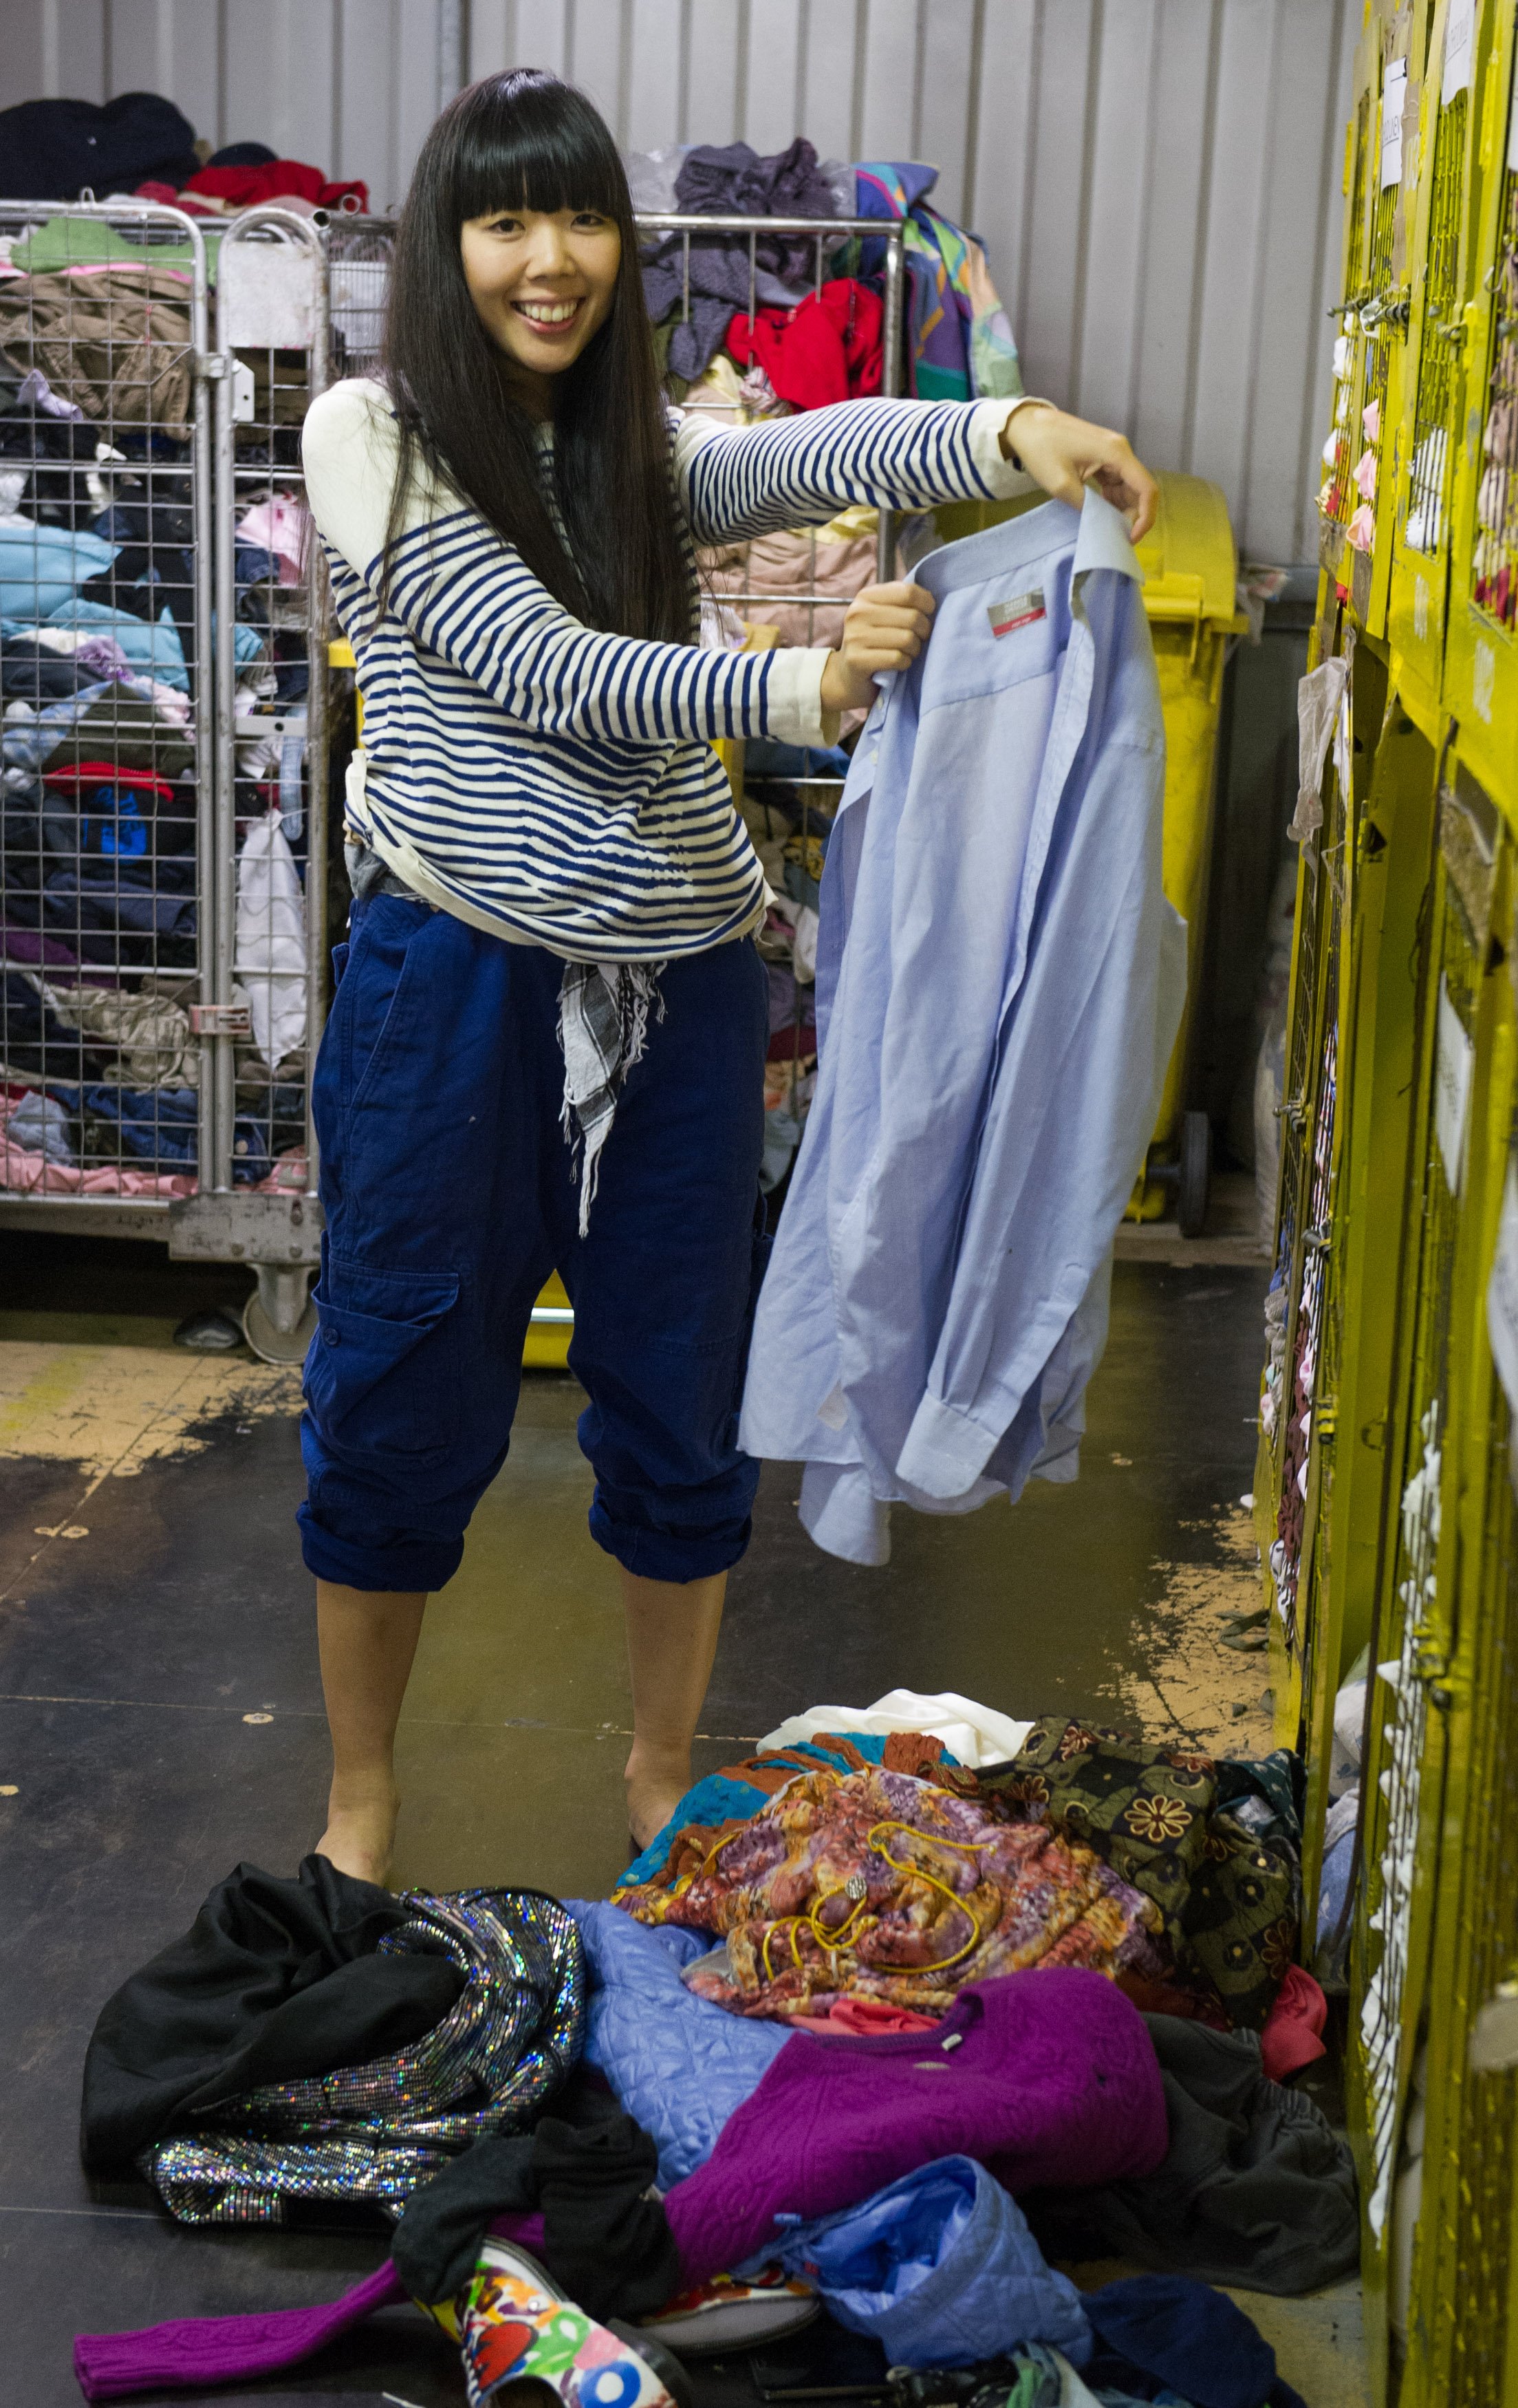 Fashion Salvage event  by loveyourclothes.org.uk LMB textile recycling warehouse, Canning Town, London